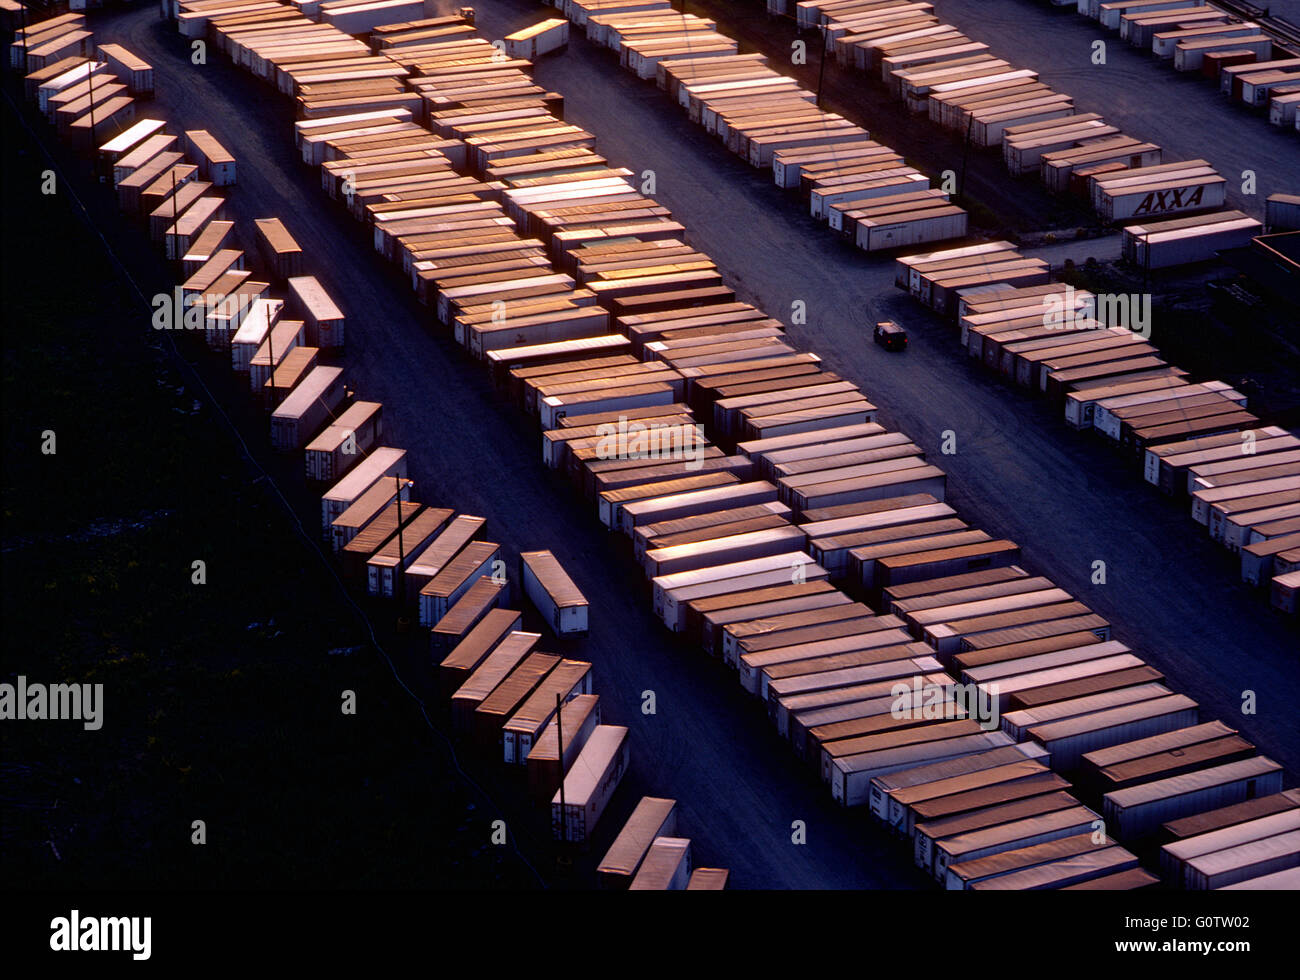 Aerial sunset view of rows of tractor trailers lined up in shipping depot - Stock Image